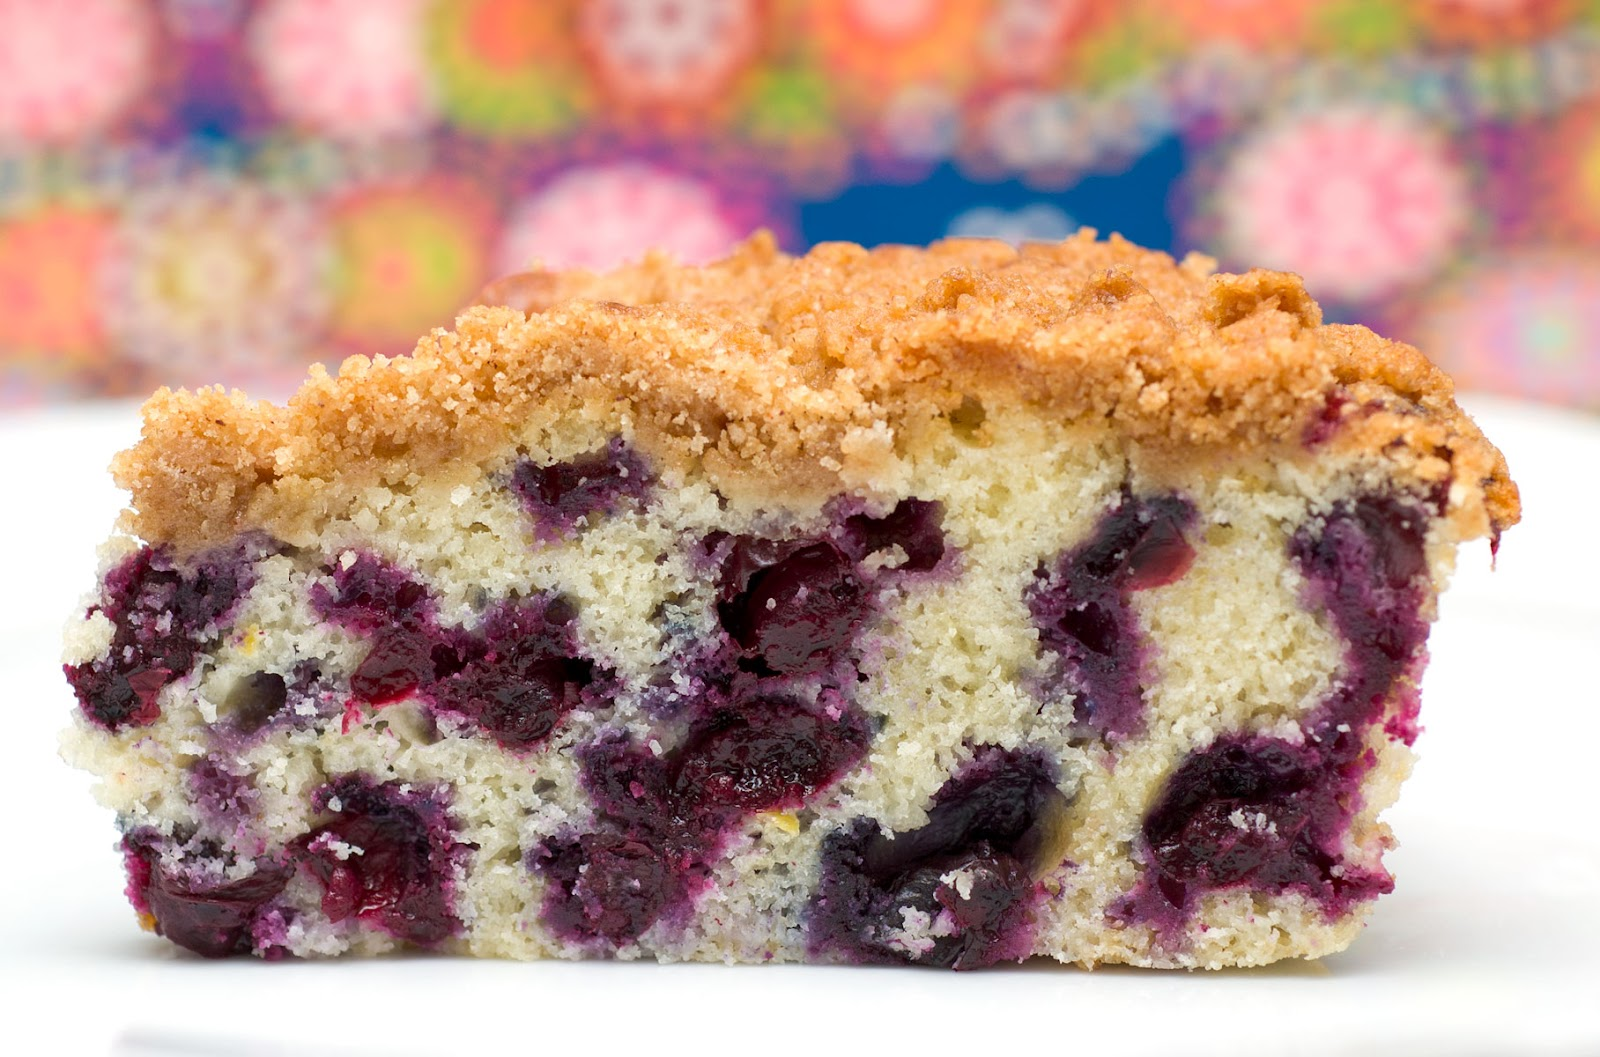 Sugar & Spice by Celeste: A Fabulous Blueberry Buckle